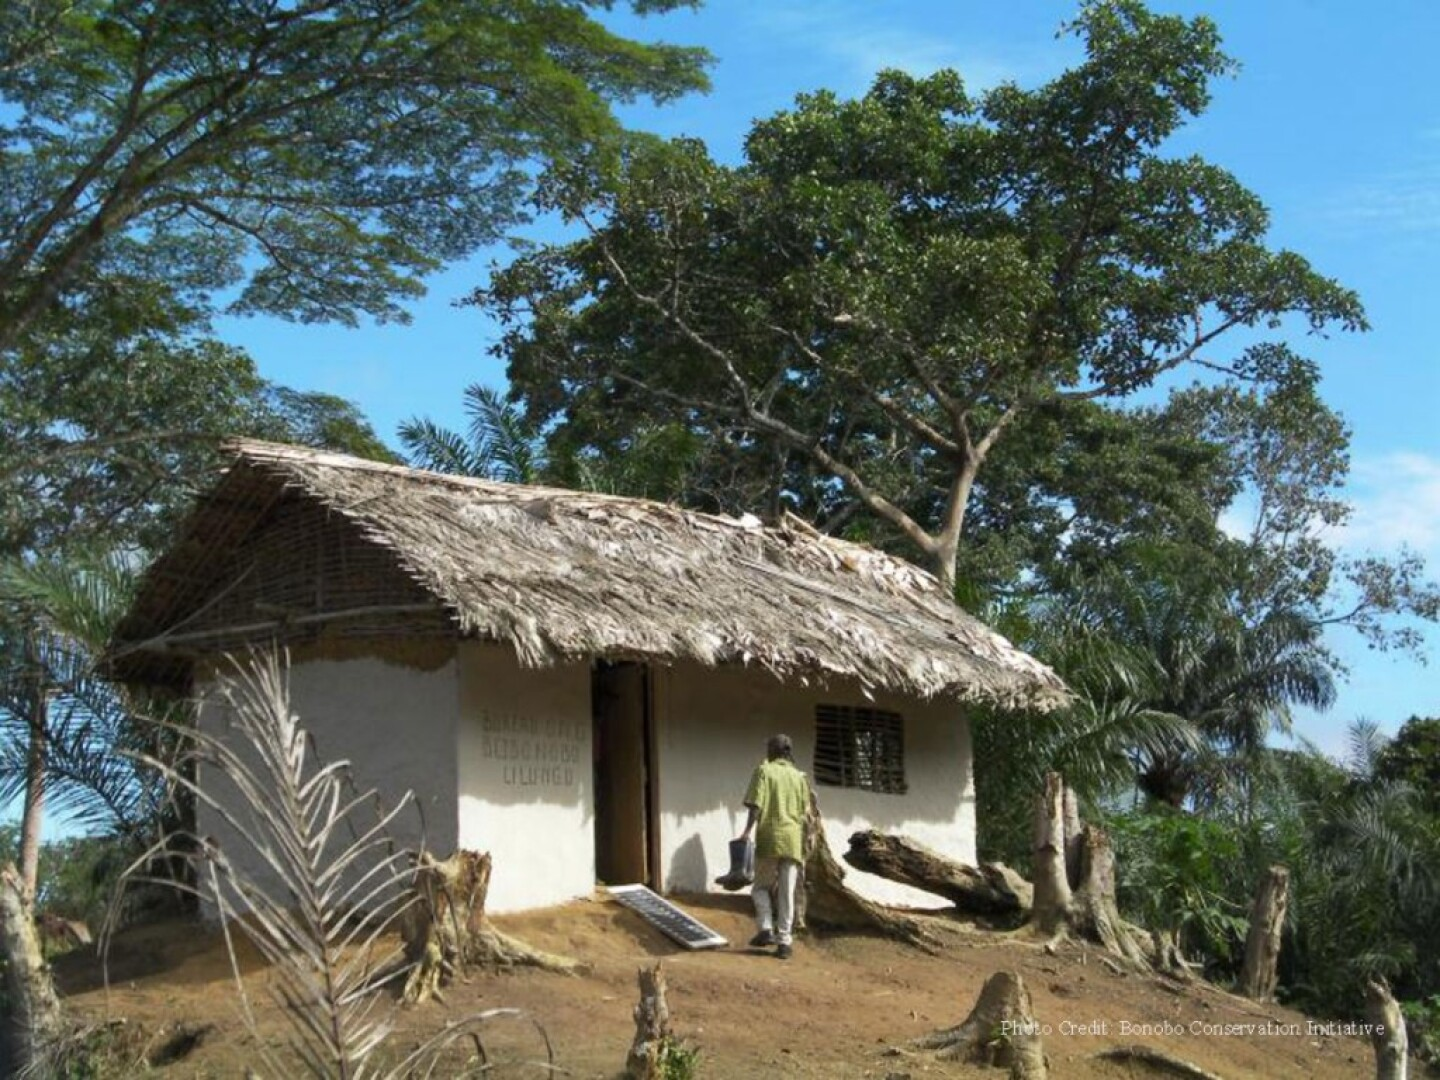 Conservation Center at Lilungu